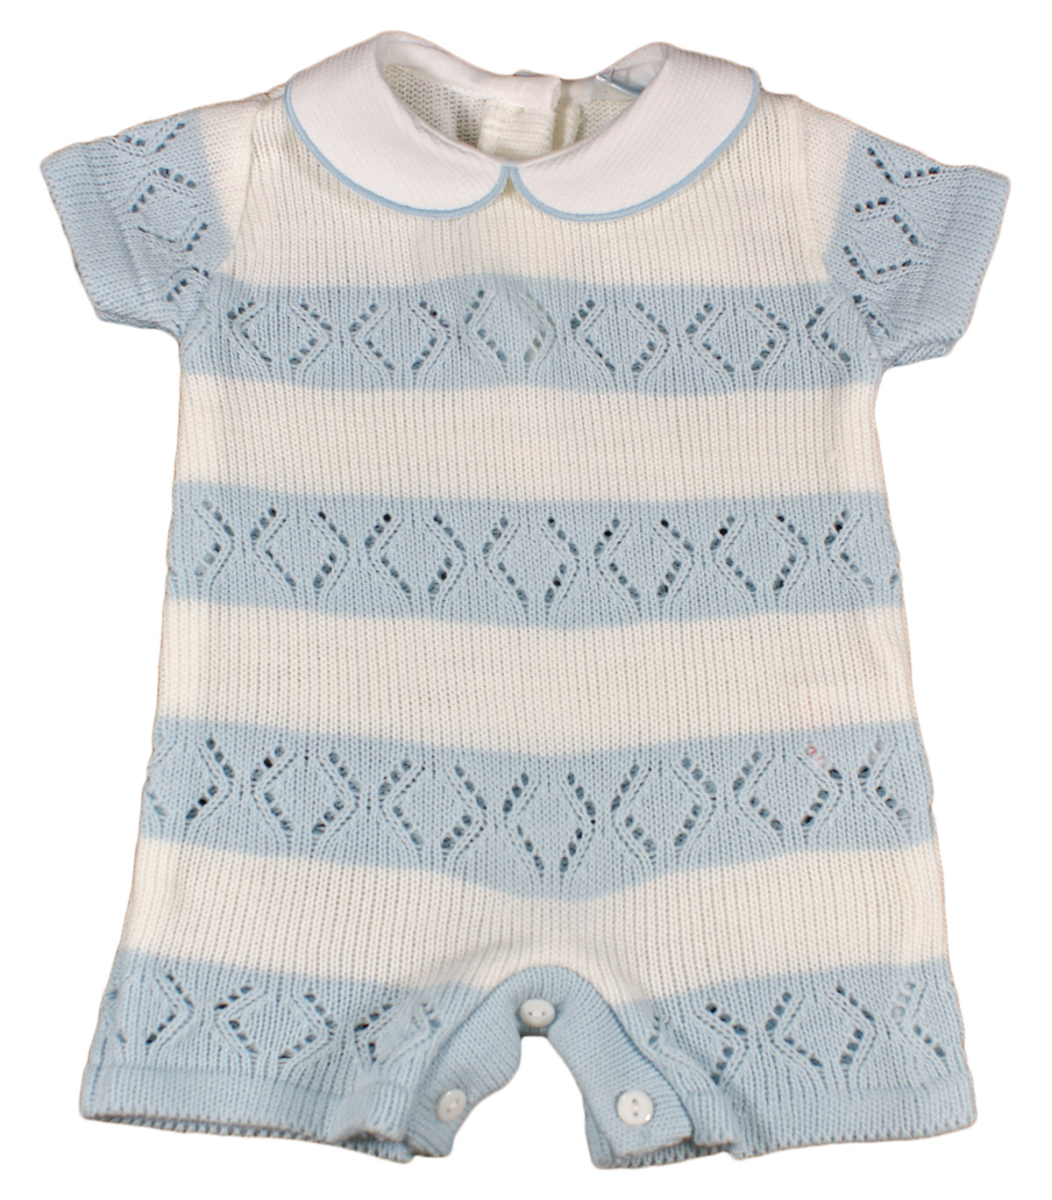 Baby Boy Knitted Romper Suit Outfit Spanish Style Ebay